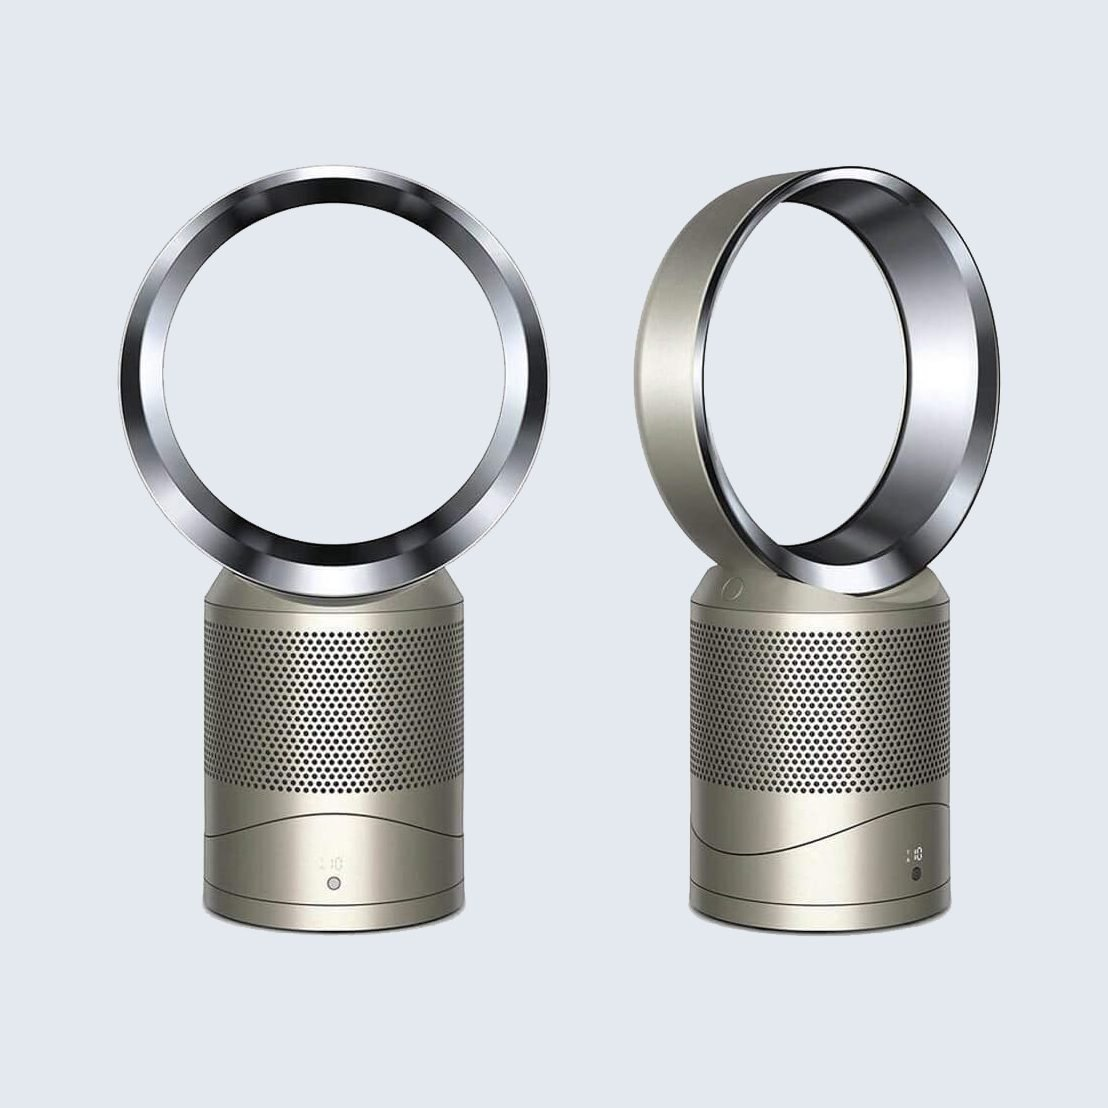 Dyson Pure Cool Link Air Purifying Desk Fan